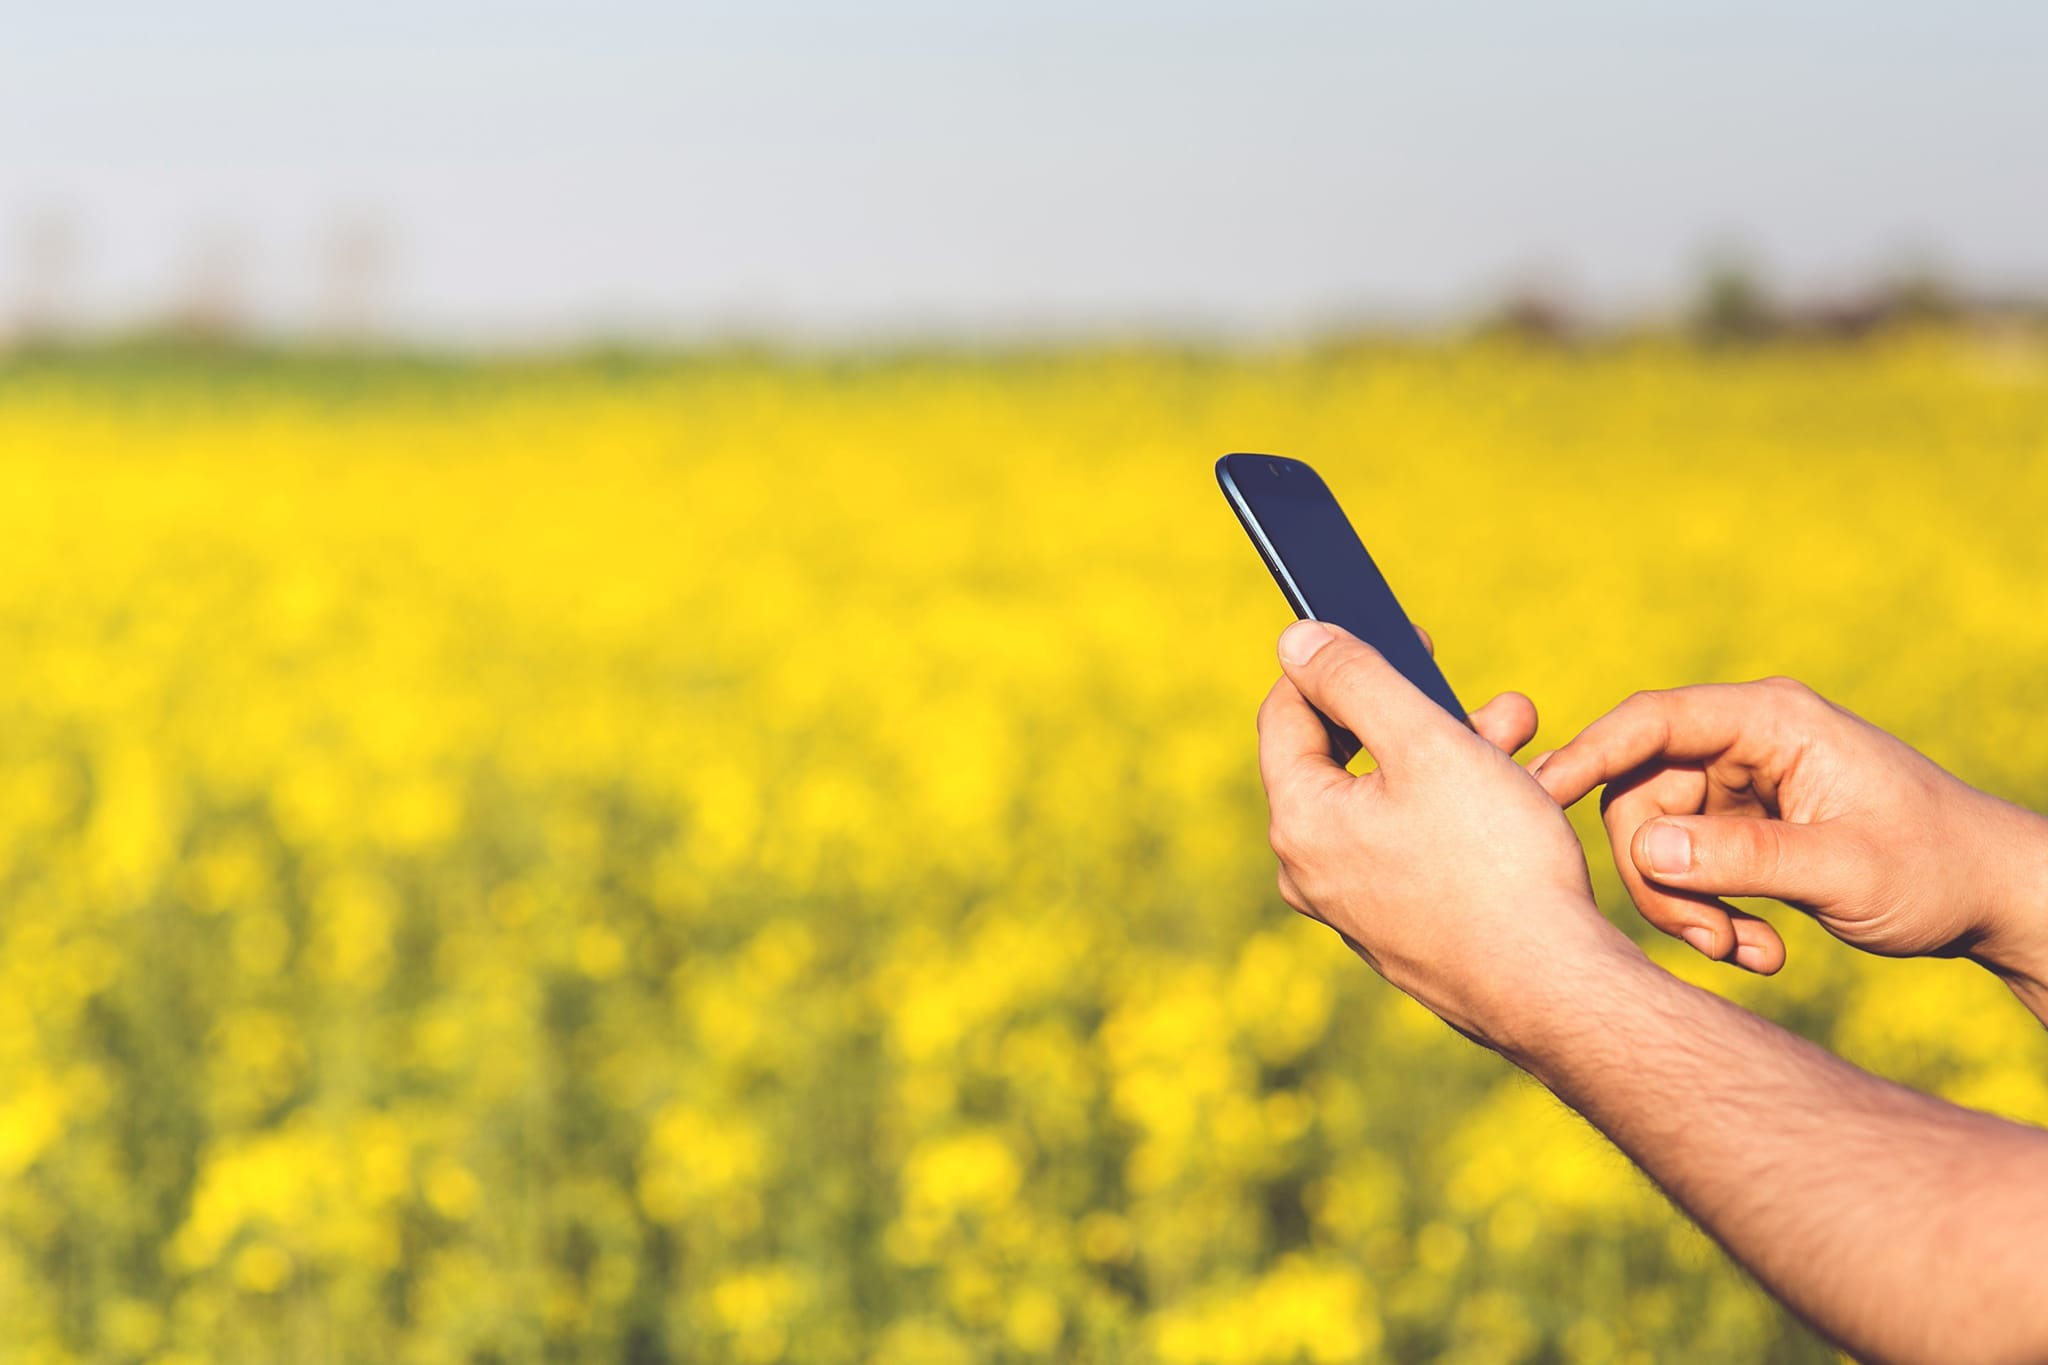 holding cell phone in field